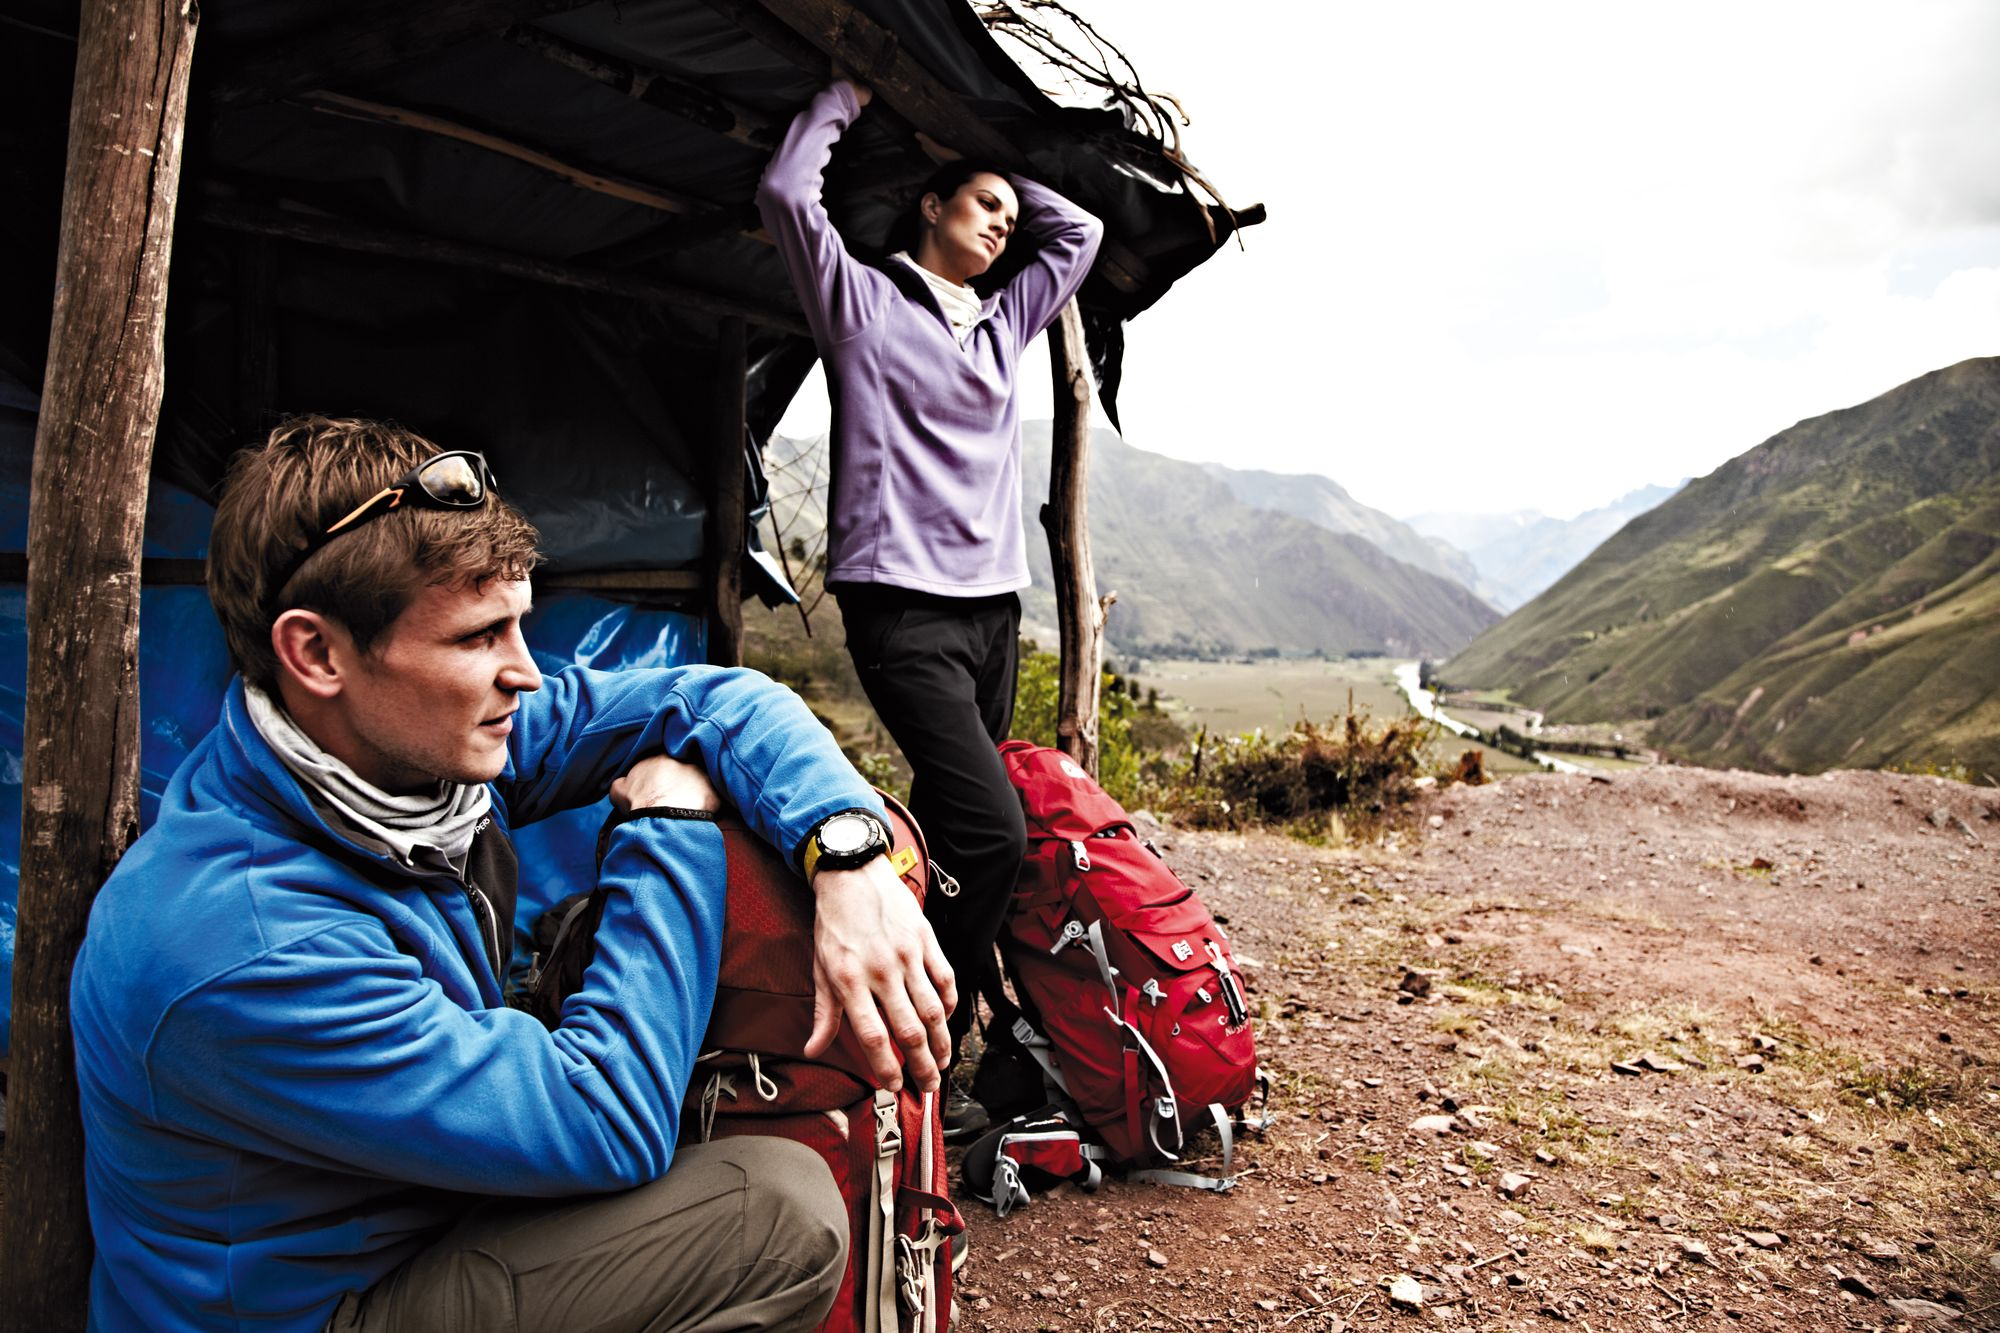 What is the most important piece of expedition kit?